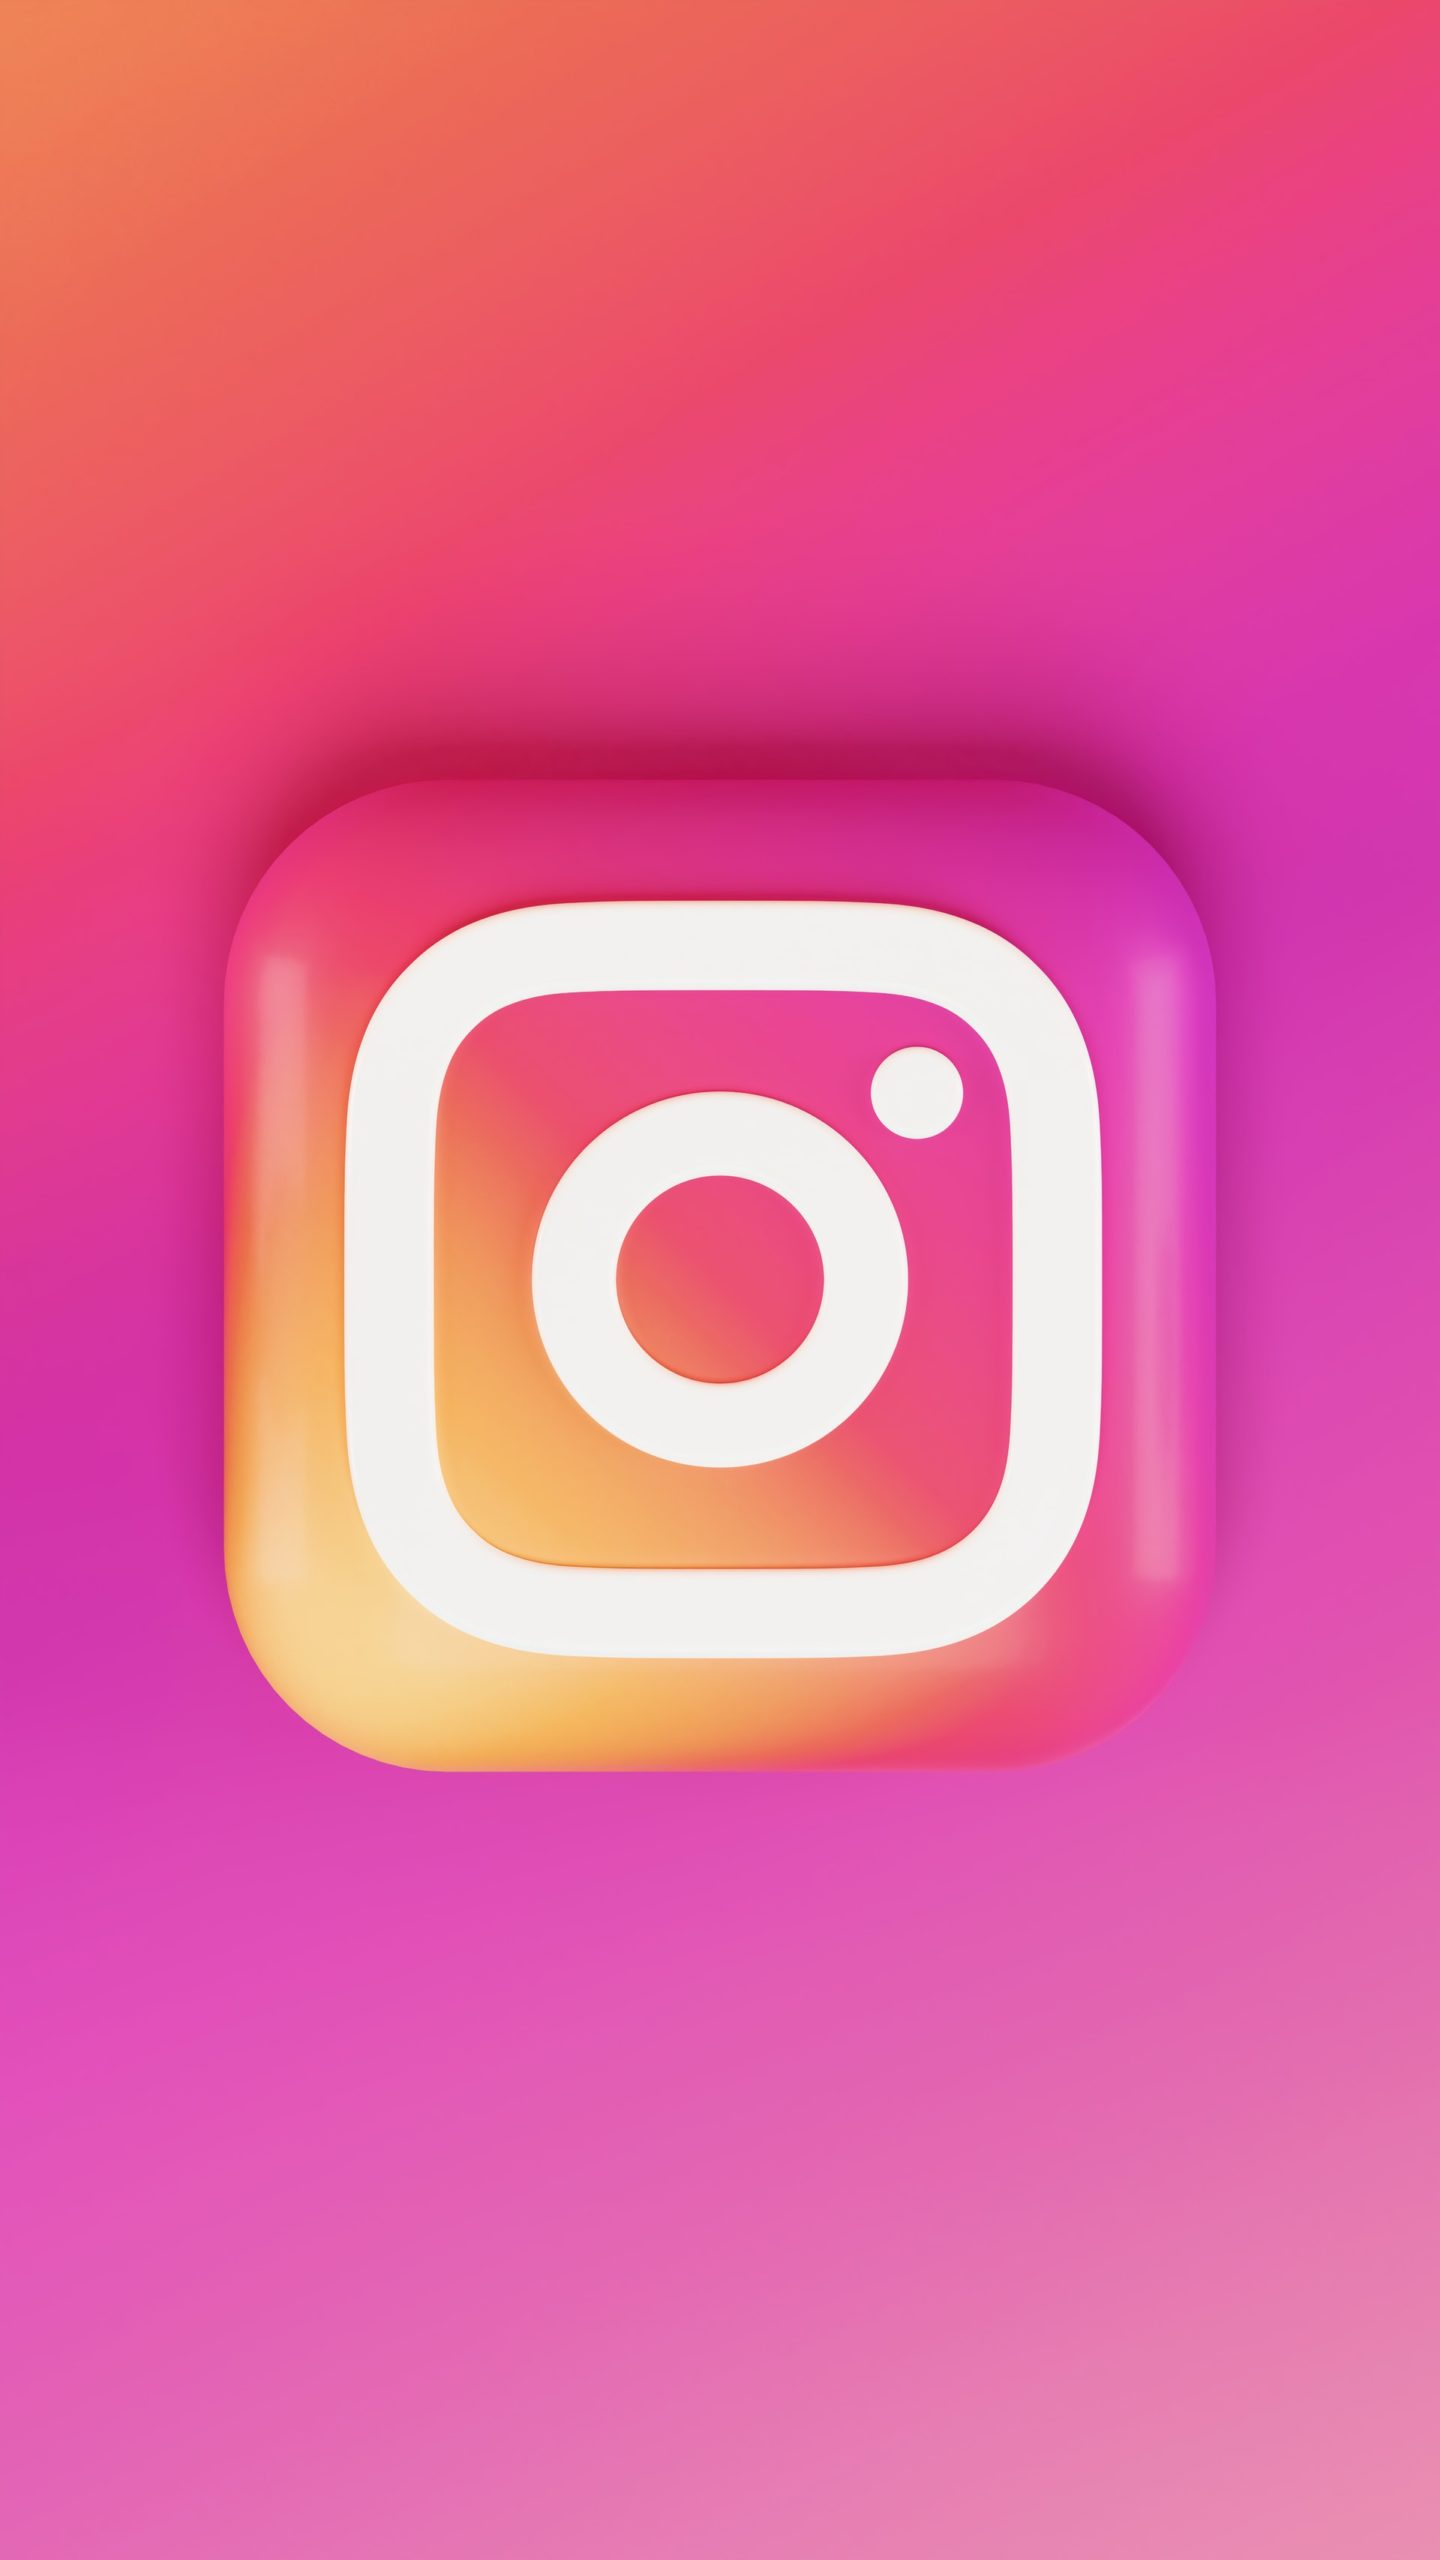 Instagram Followers Tips Article Image